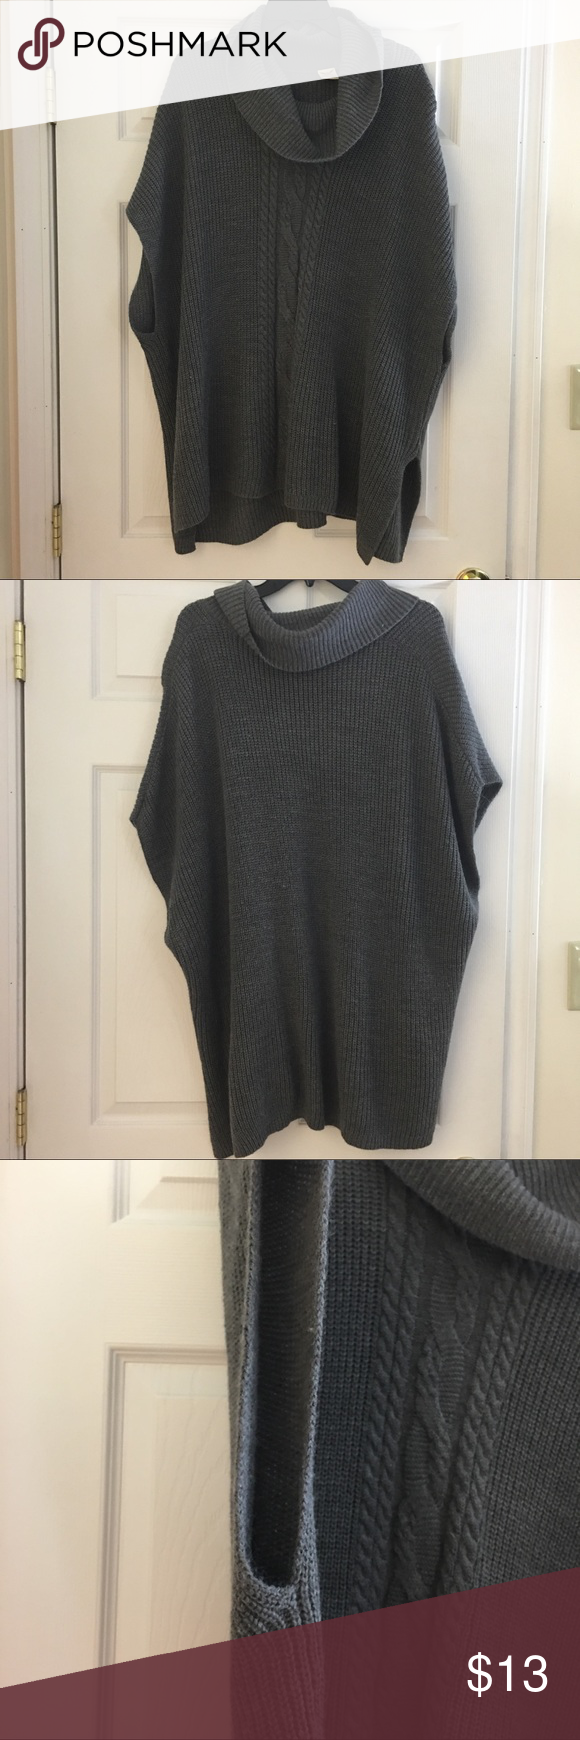 ✨ LIKE NEW Pull Over Sweater ✨ 🌟 PLEASE REFER TO THE PICTURES, LET ME KNOW IF YOU HAVE ANY QUESTIONS & OFFERS WANTED! ❤️💋 Faded Glory Sweaters Shrugs & Ponchos